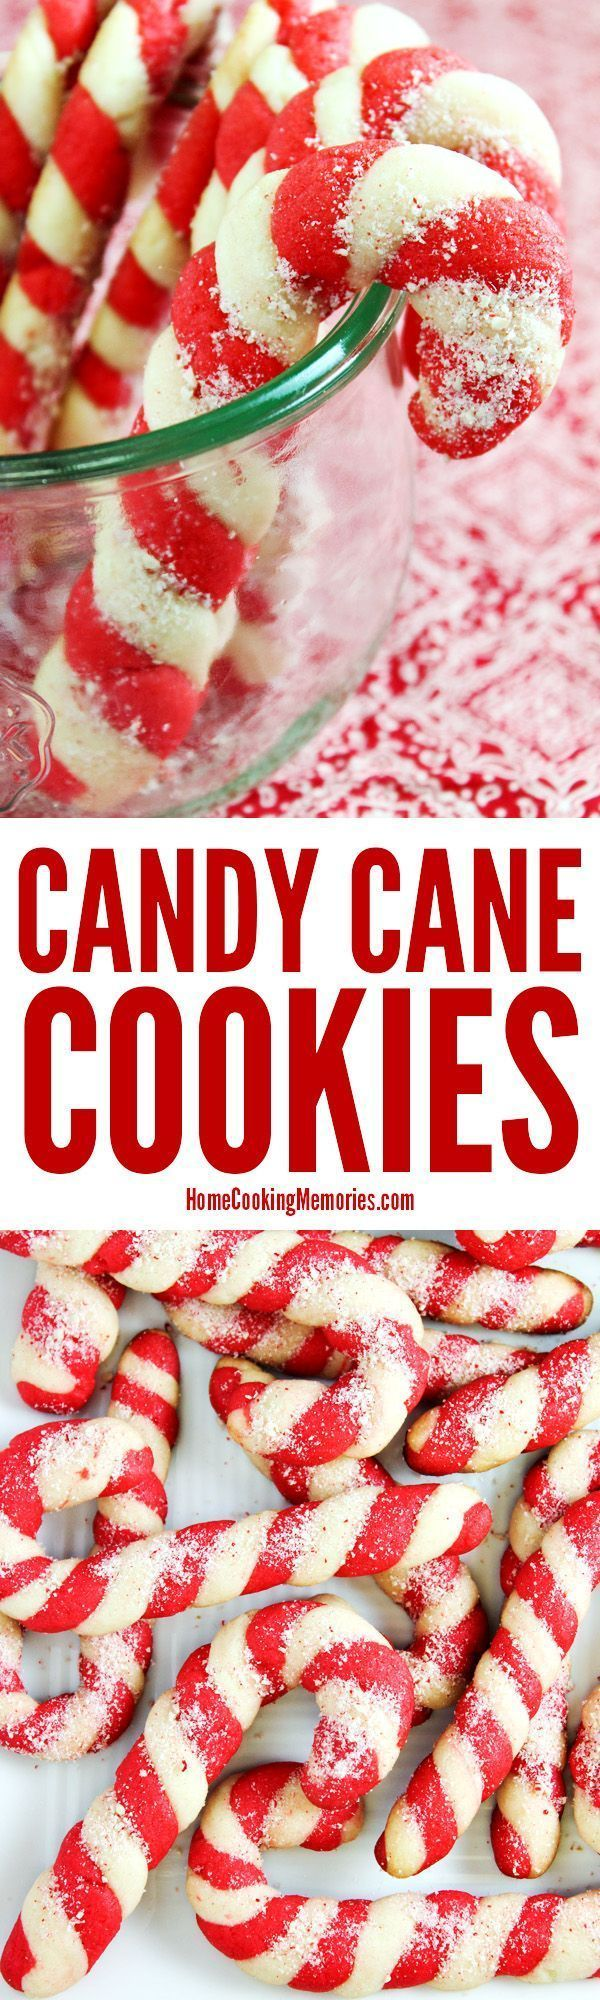 Christmas Candy Cane Cookies recipe! Made from an easy cookie dough recipe with plenty of festive peppermint flavor. The colorful dough is twisted to look like a candy cane. A favorite at holiday parties & cookie exchanges. via /HomeCookMemory/